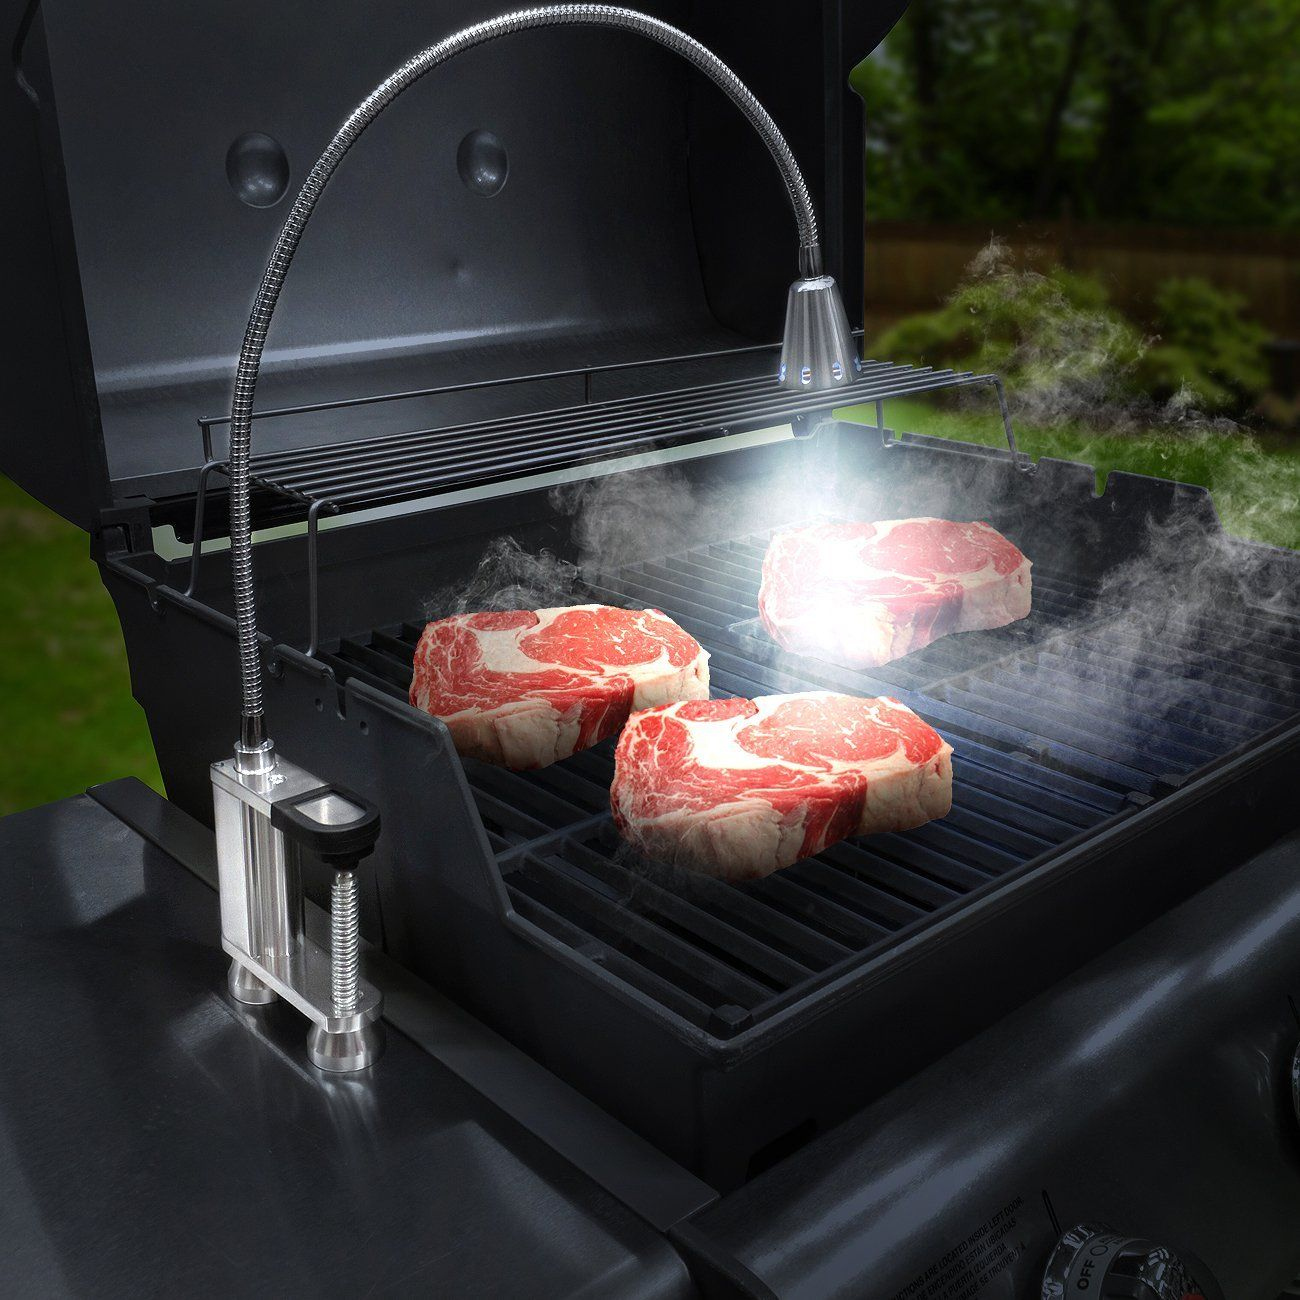 Flexible Grill Light Grill Light Barbeque Tools Diy Barbecue